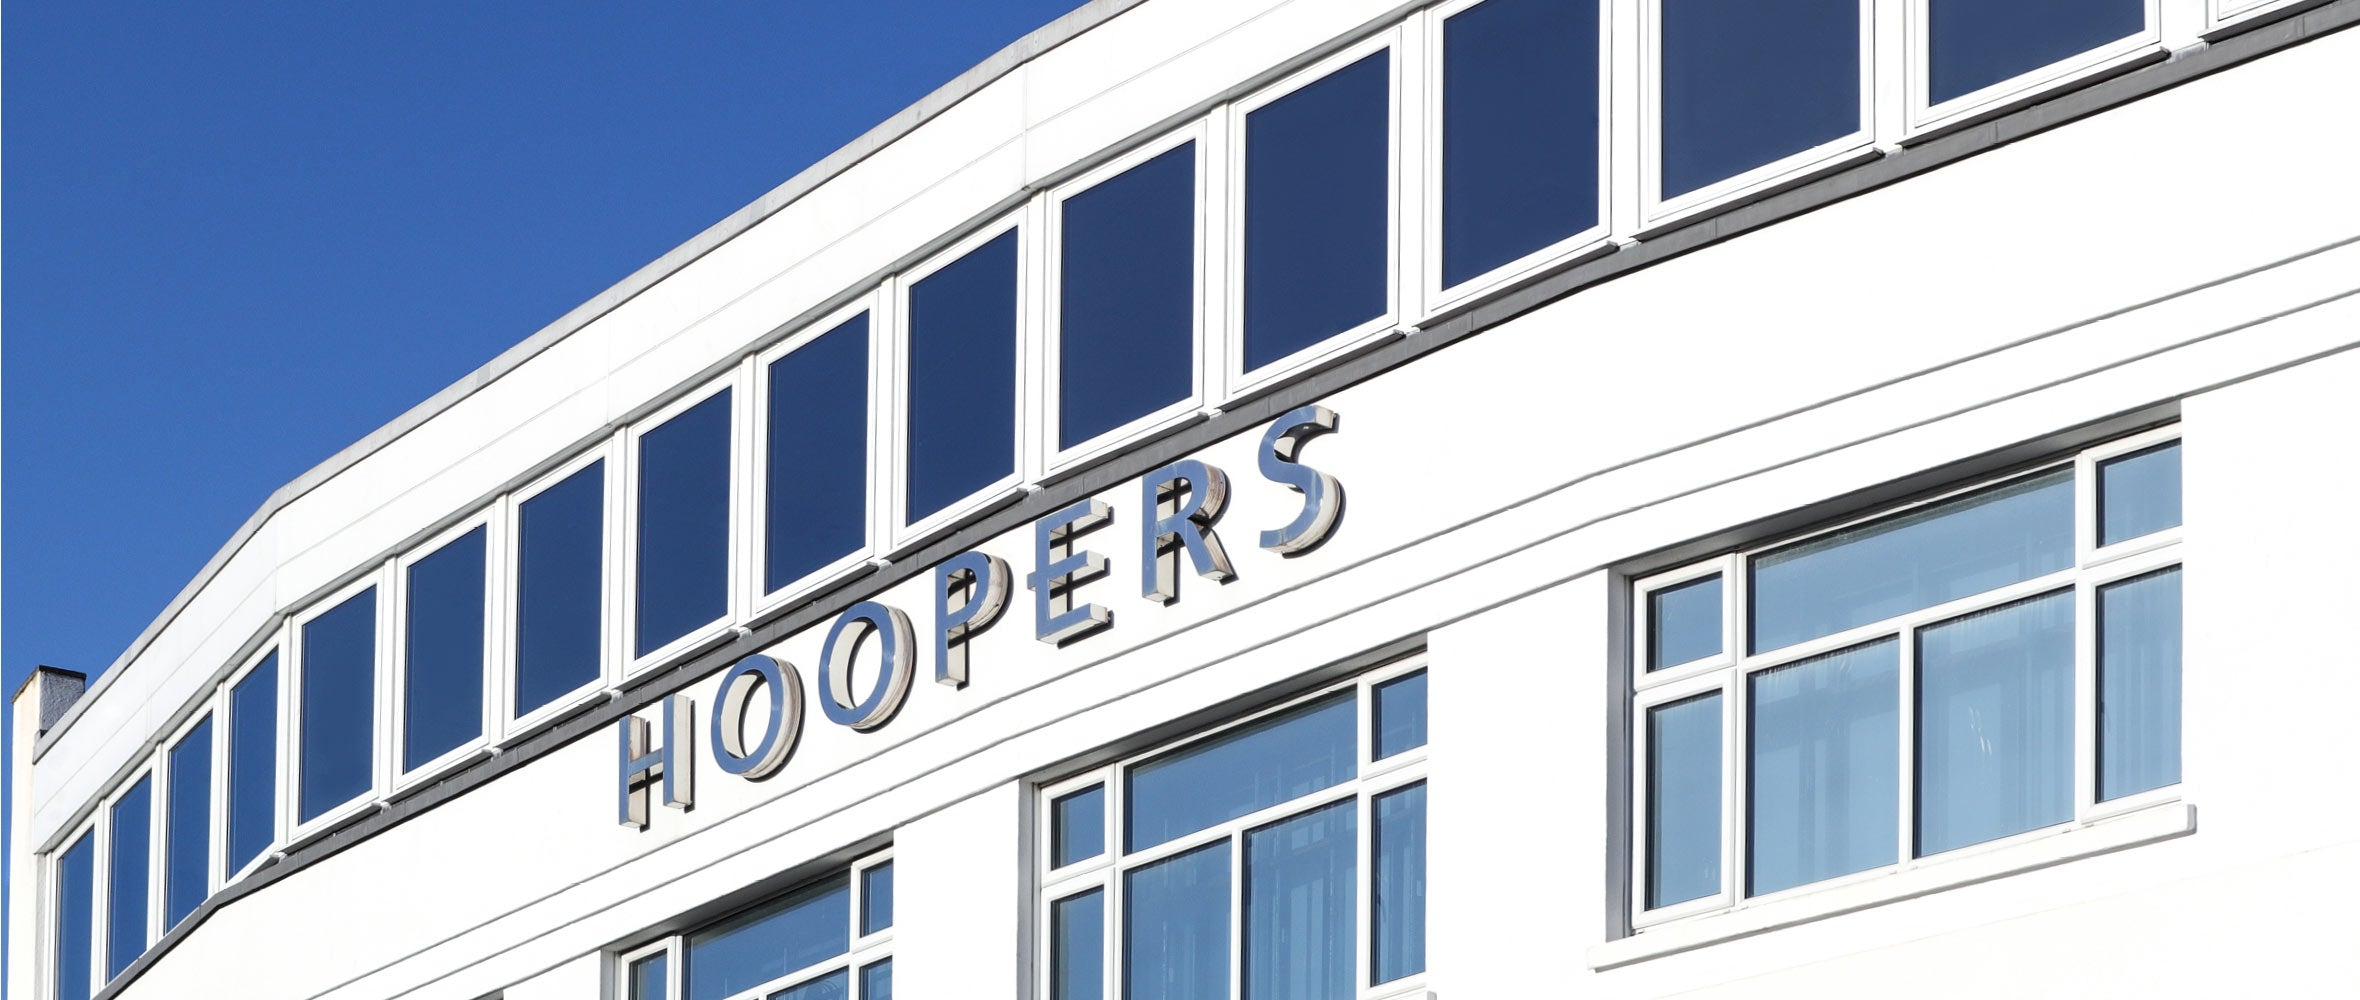 The front of Hoopers Torquay